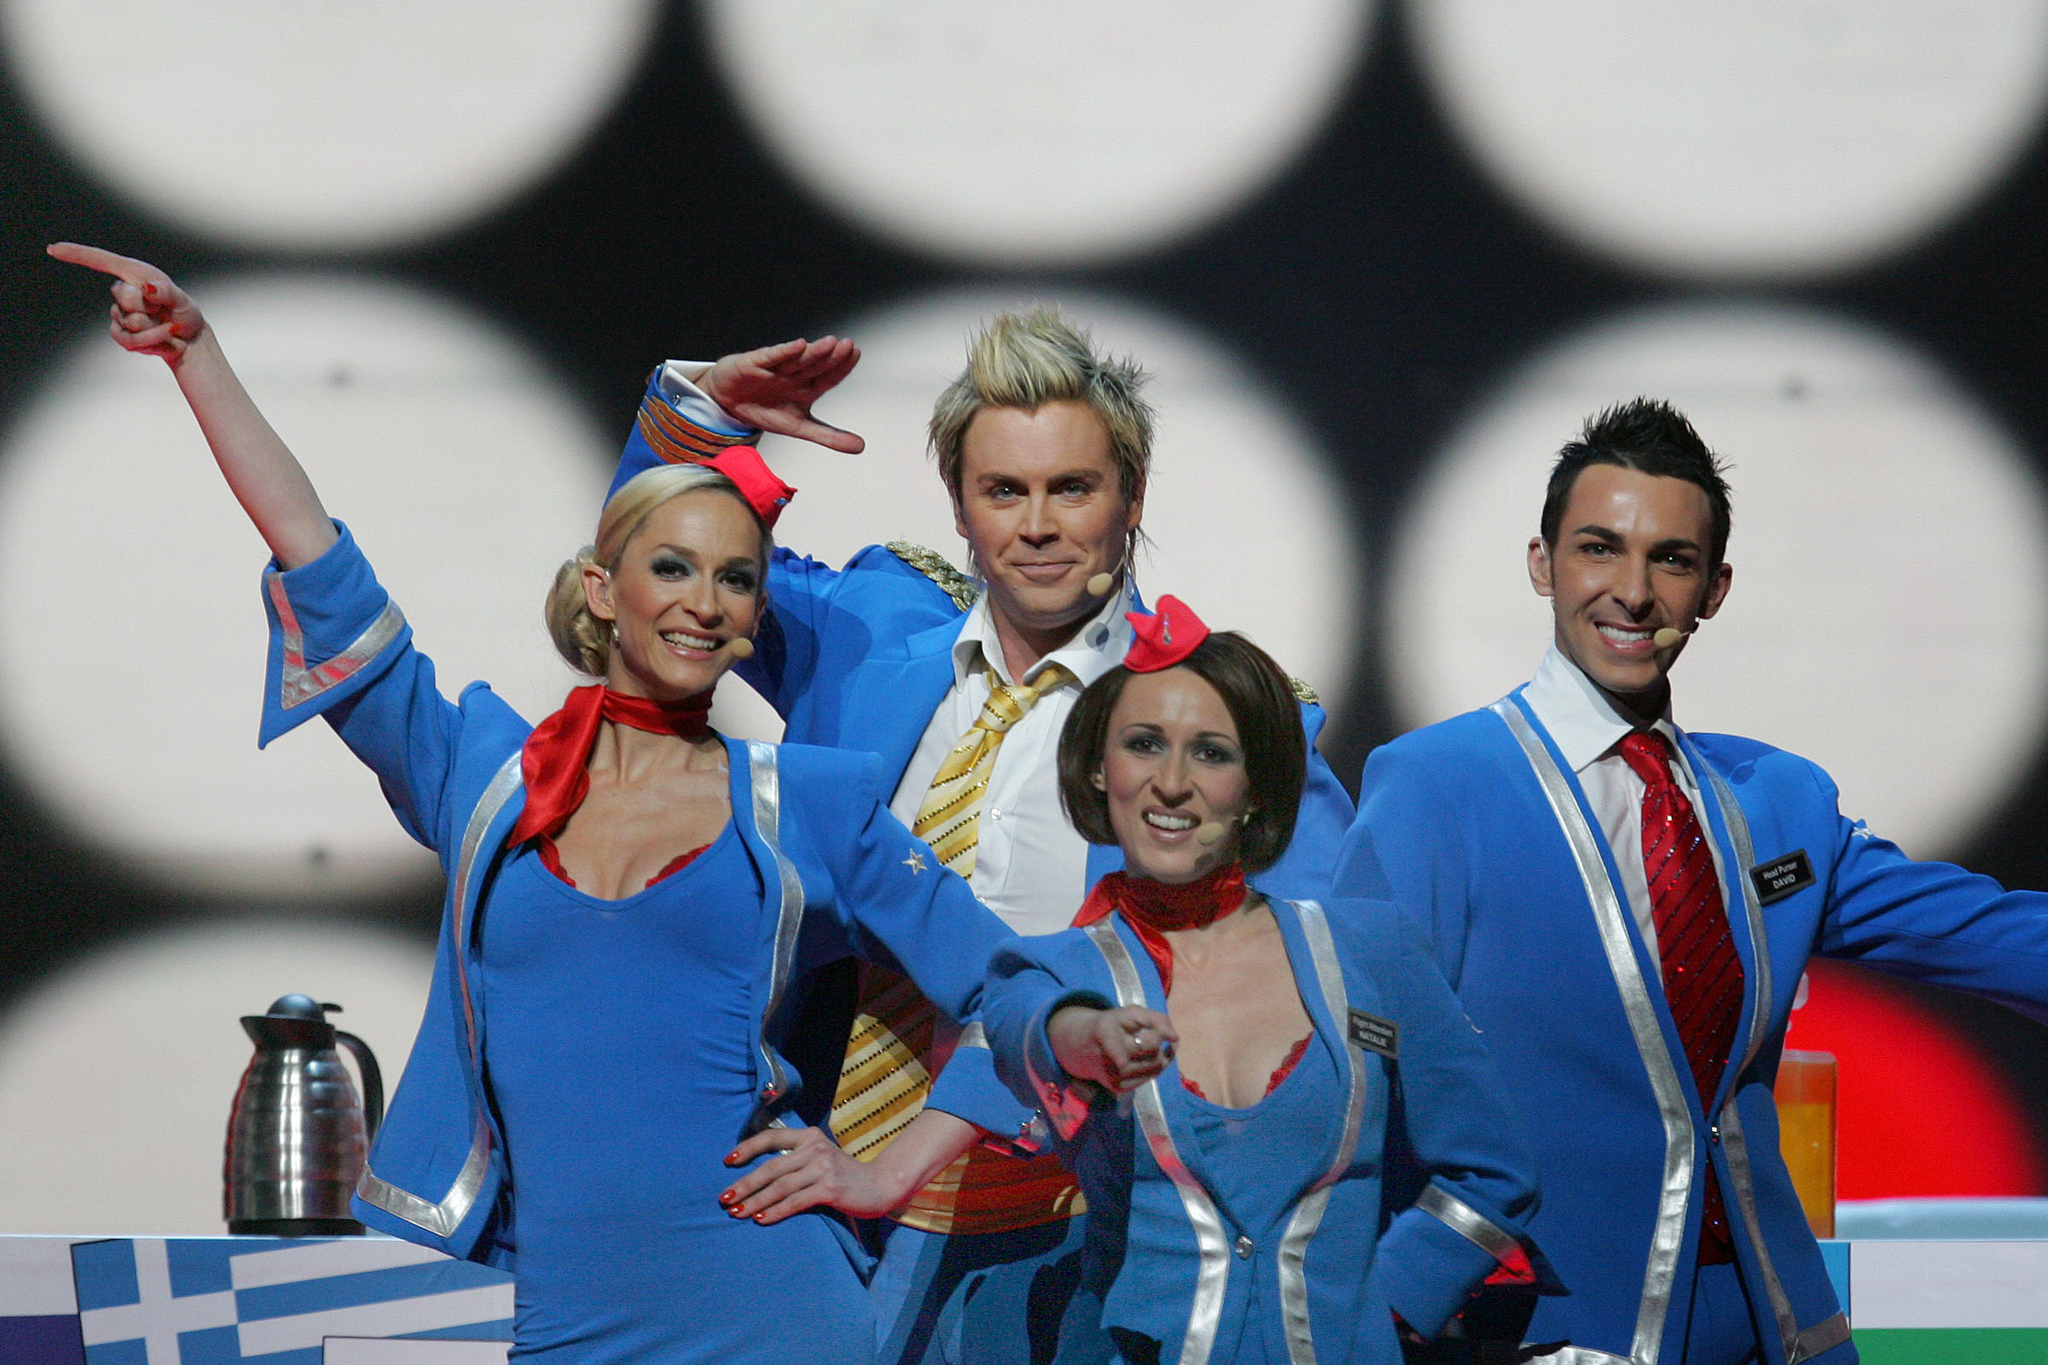 Scooch representing the United Kingdom, sing their song entitled 'Flying the Flag (For You)' at a dress rehearsal for the 2007 Eurovision Song Contest, in Helsinki, Finland, Friday, May 11, 2007.